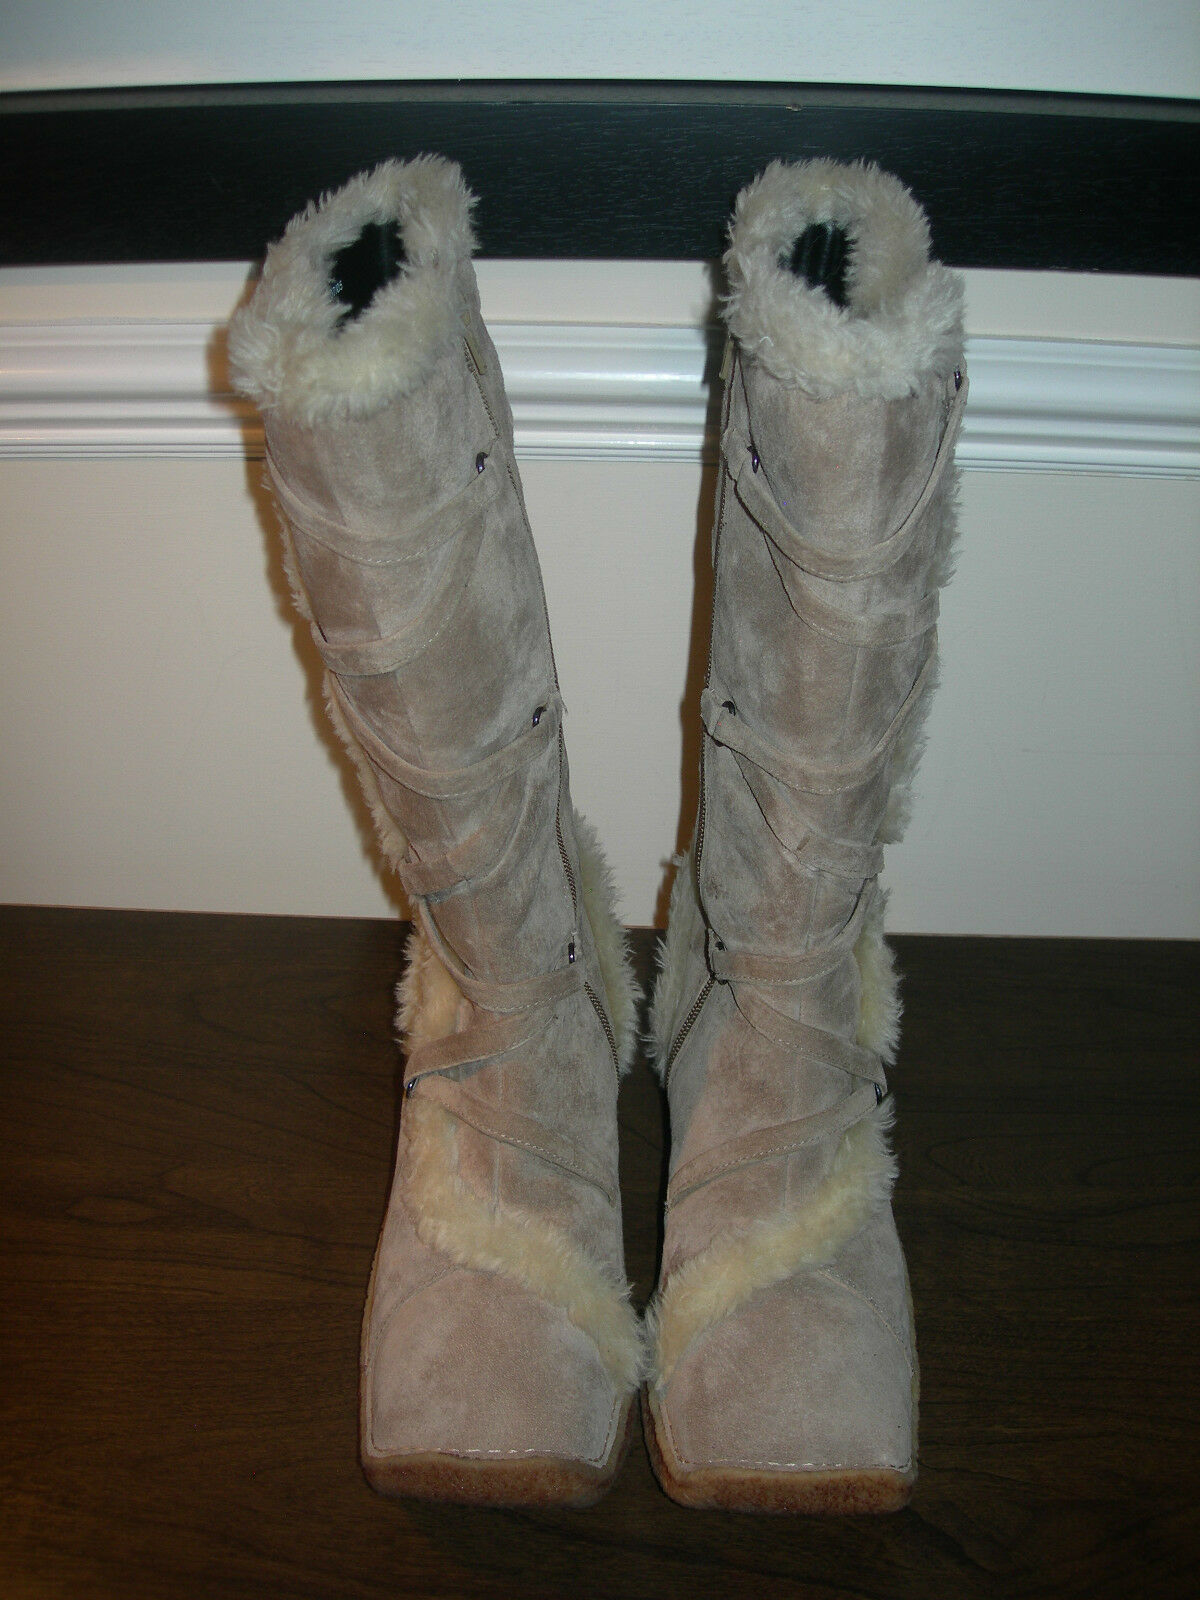 HUSH PUPPIES WOMEN'S Stiefel CALF LENGTH FUR TAUPE SUEDE / BEIGE SUEDE TAUPE EU SIZE 38 / UK 5 e6ef0f